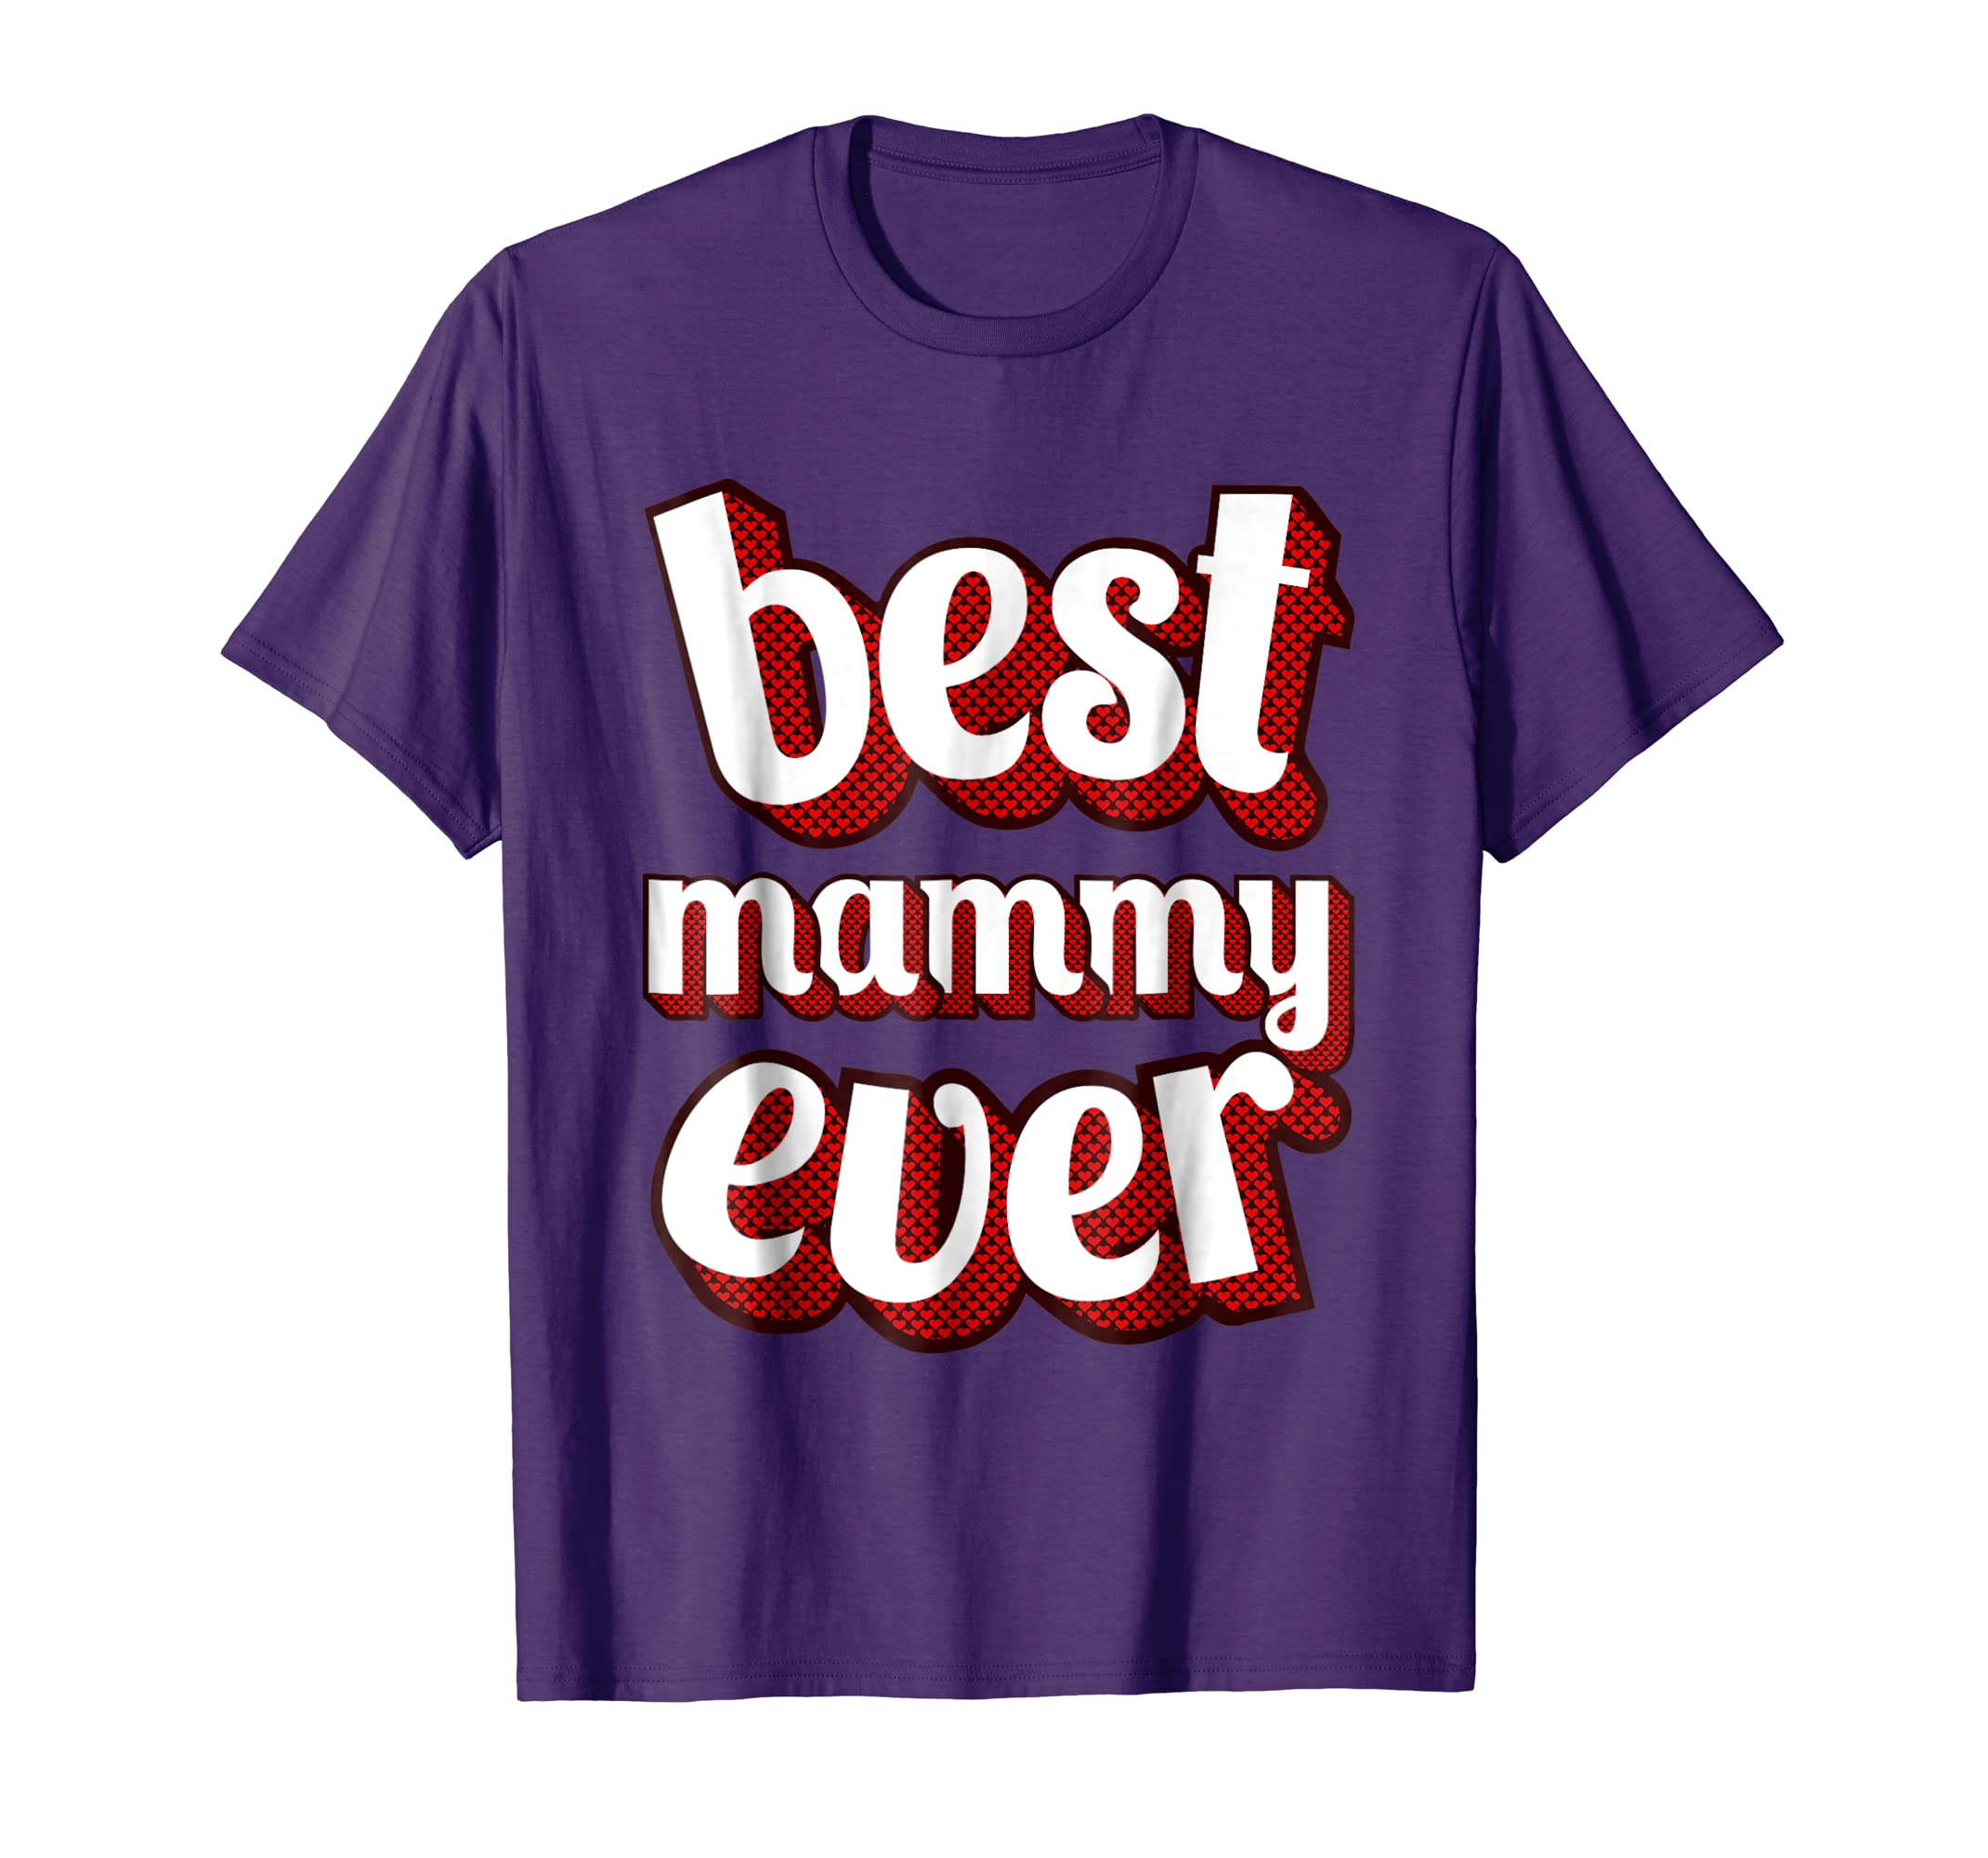 Best Mammy Ever T Shirt Vintage Retro Classic Graphic Design-alottee gift